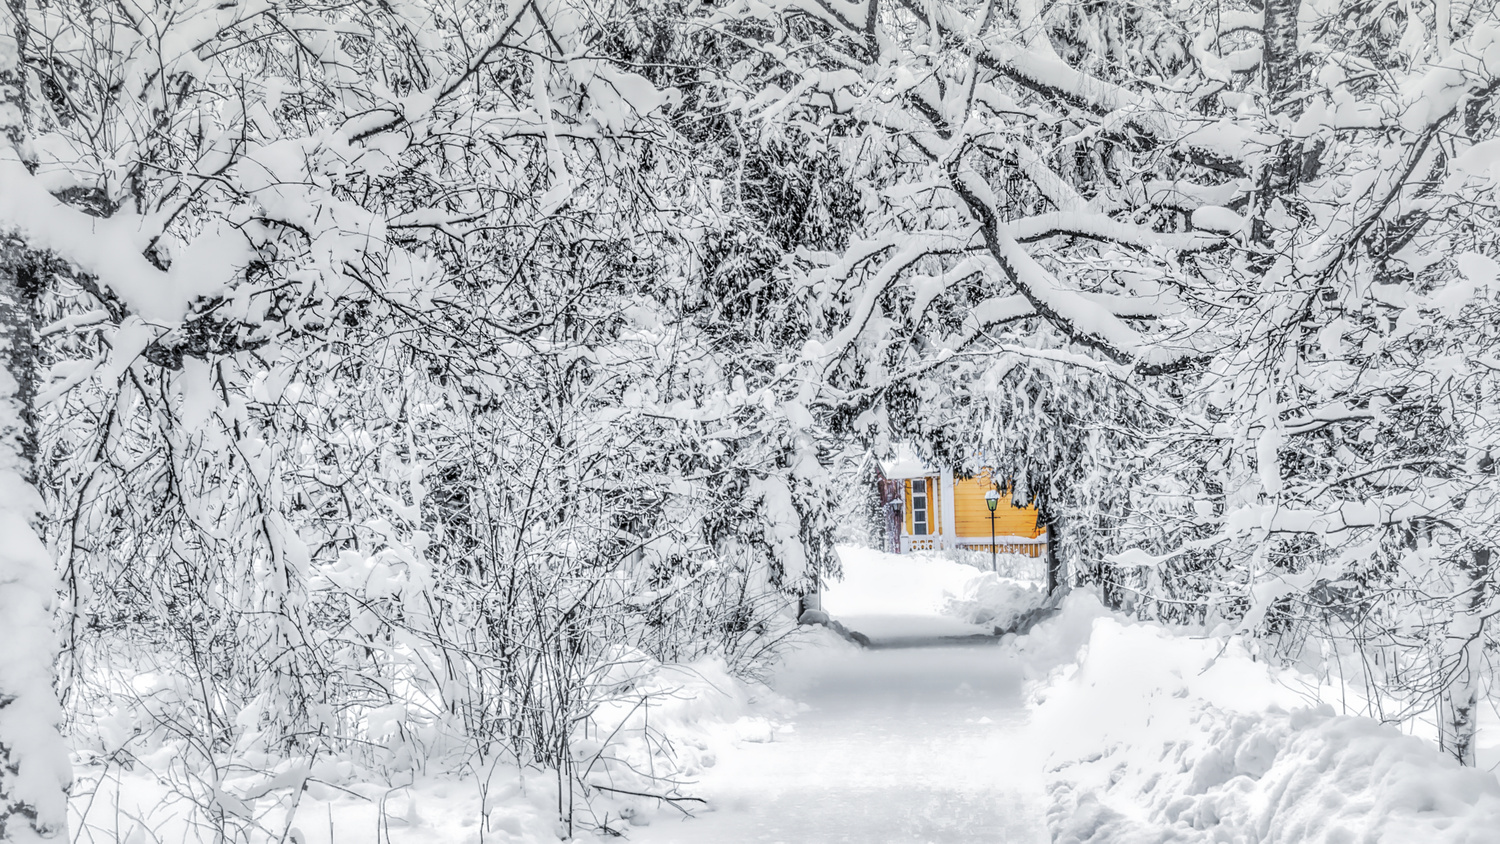 Surrounded by Snow by Carl Irjala